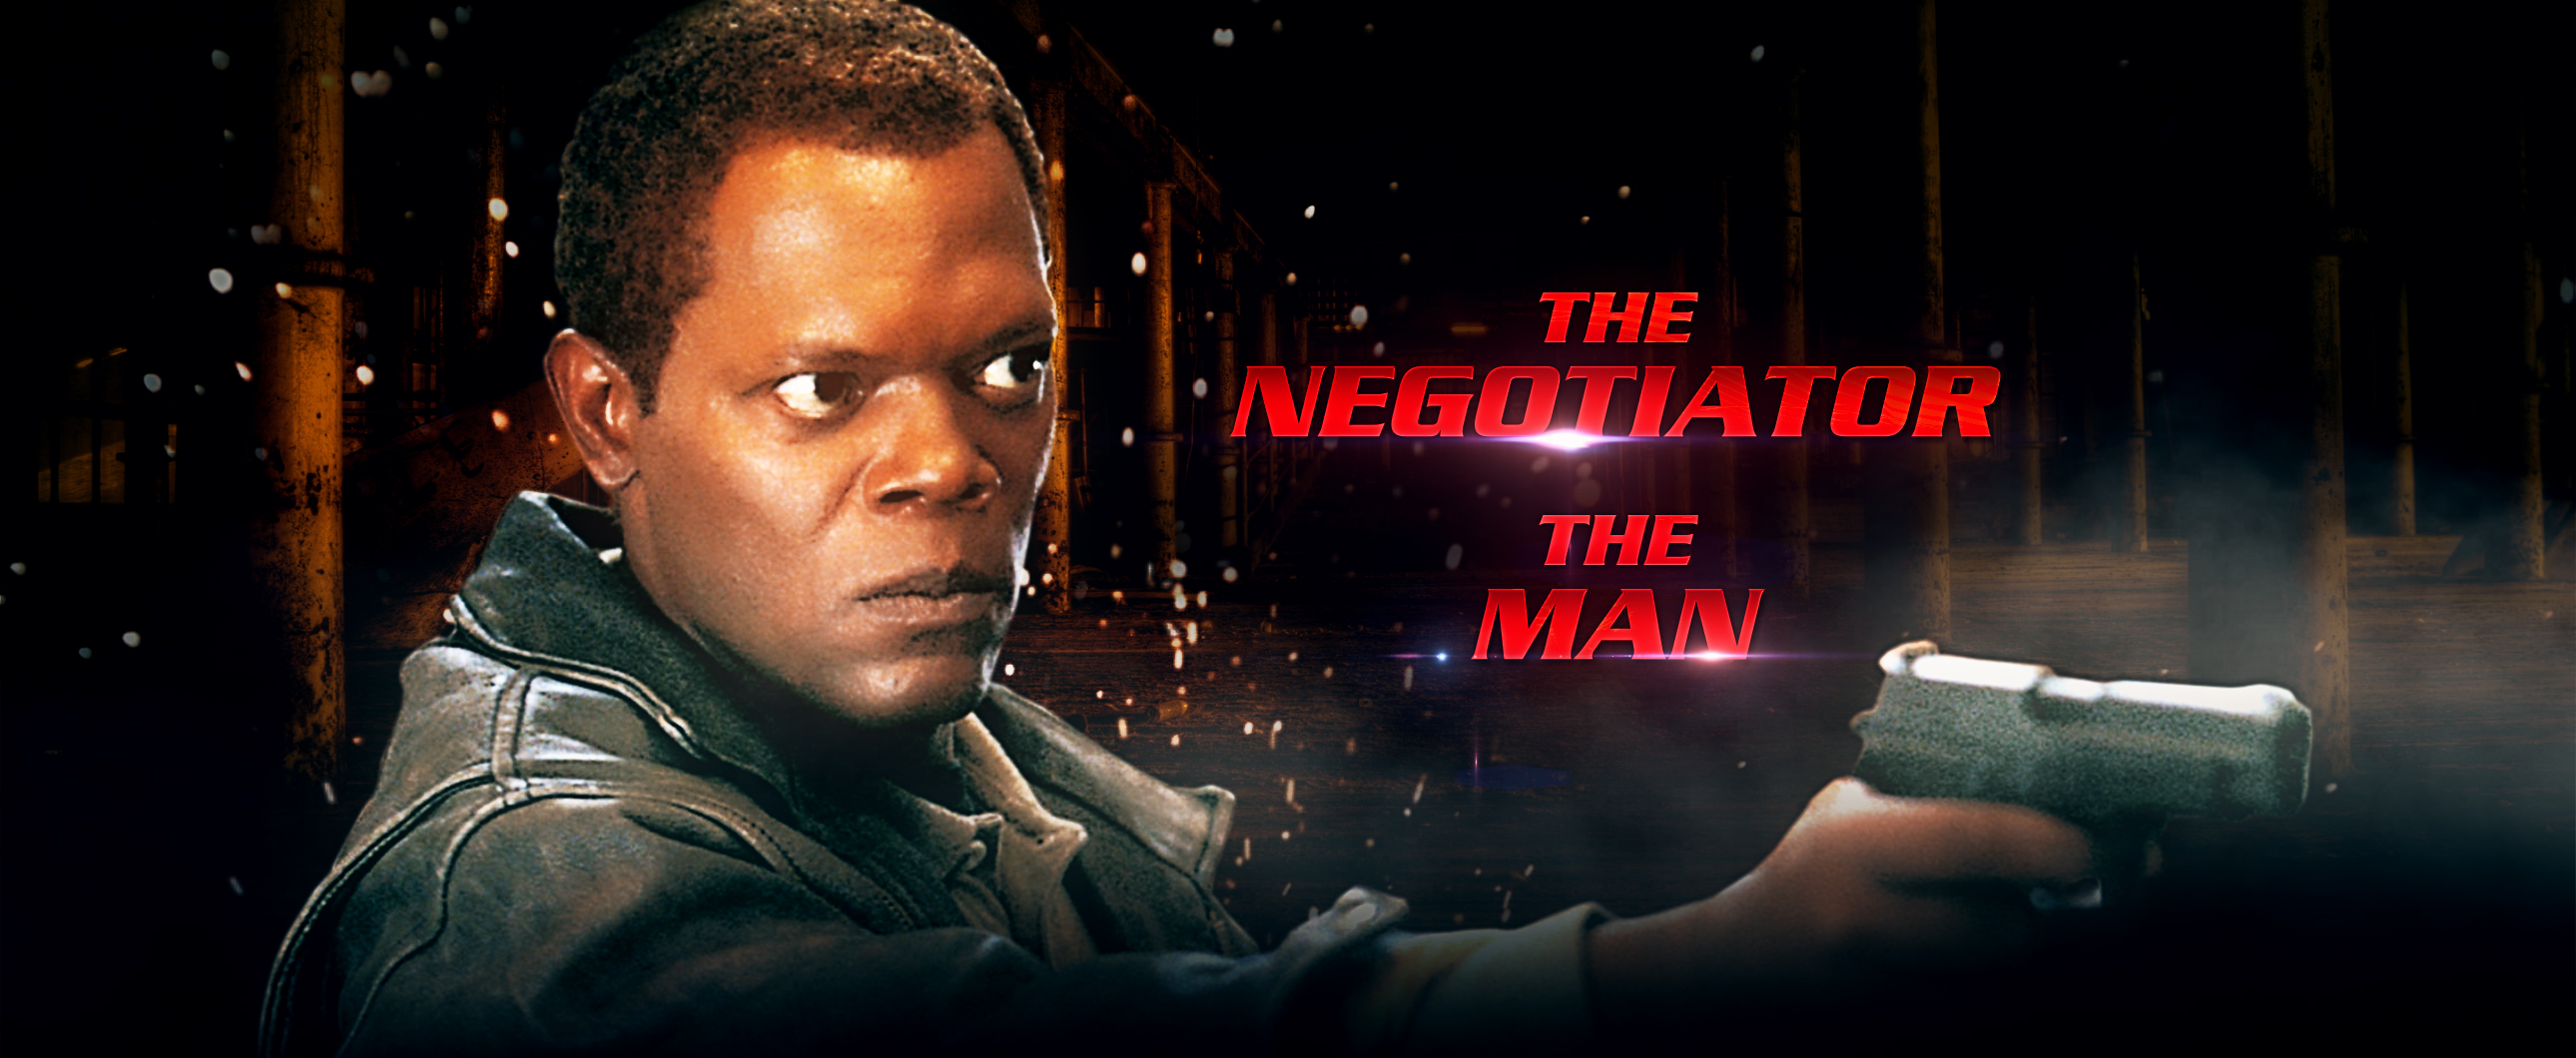 The Negotiator/The Man Stunt